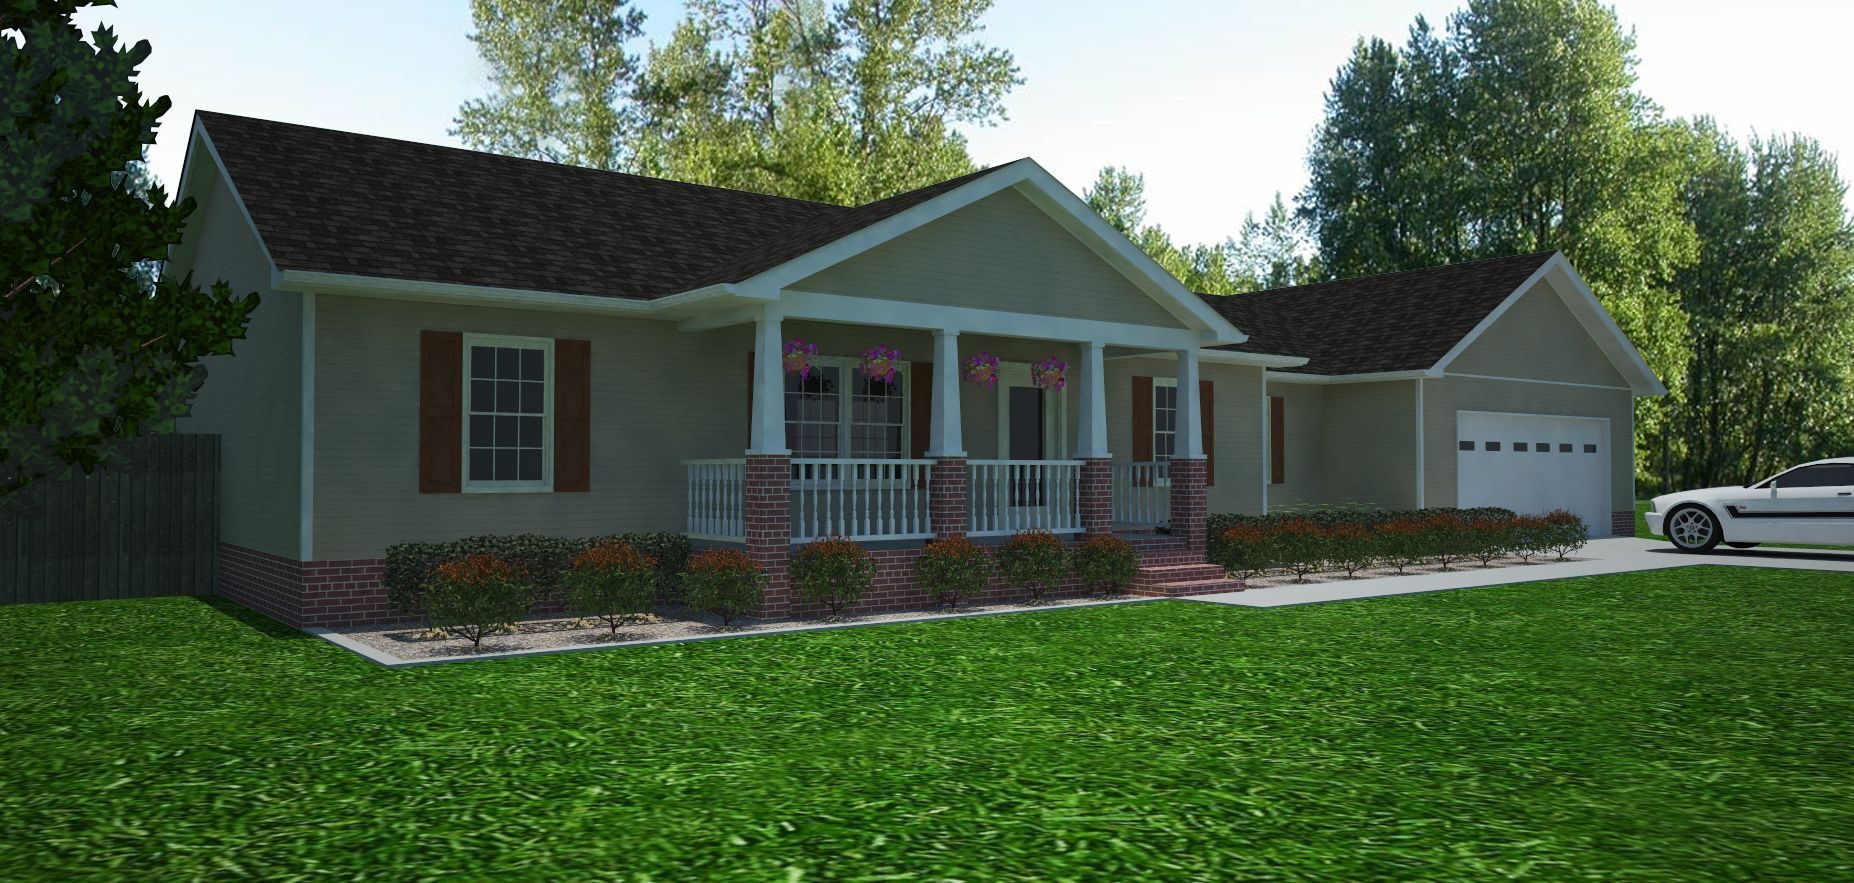 add garage to small ranch - Google Search | Small front ...